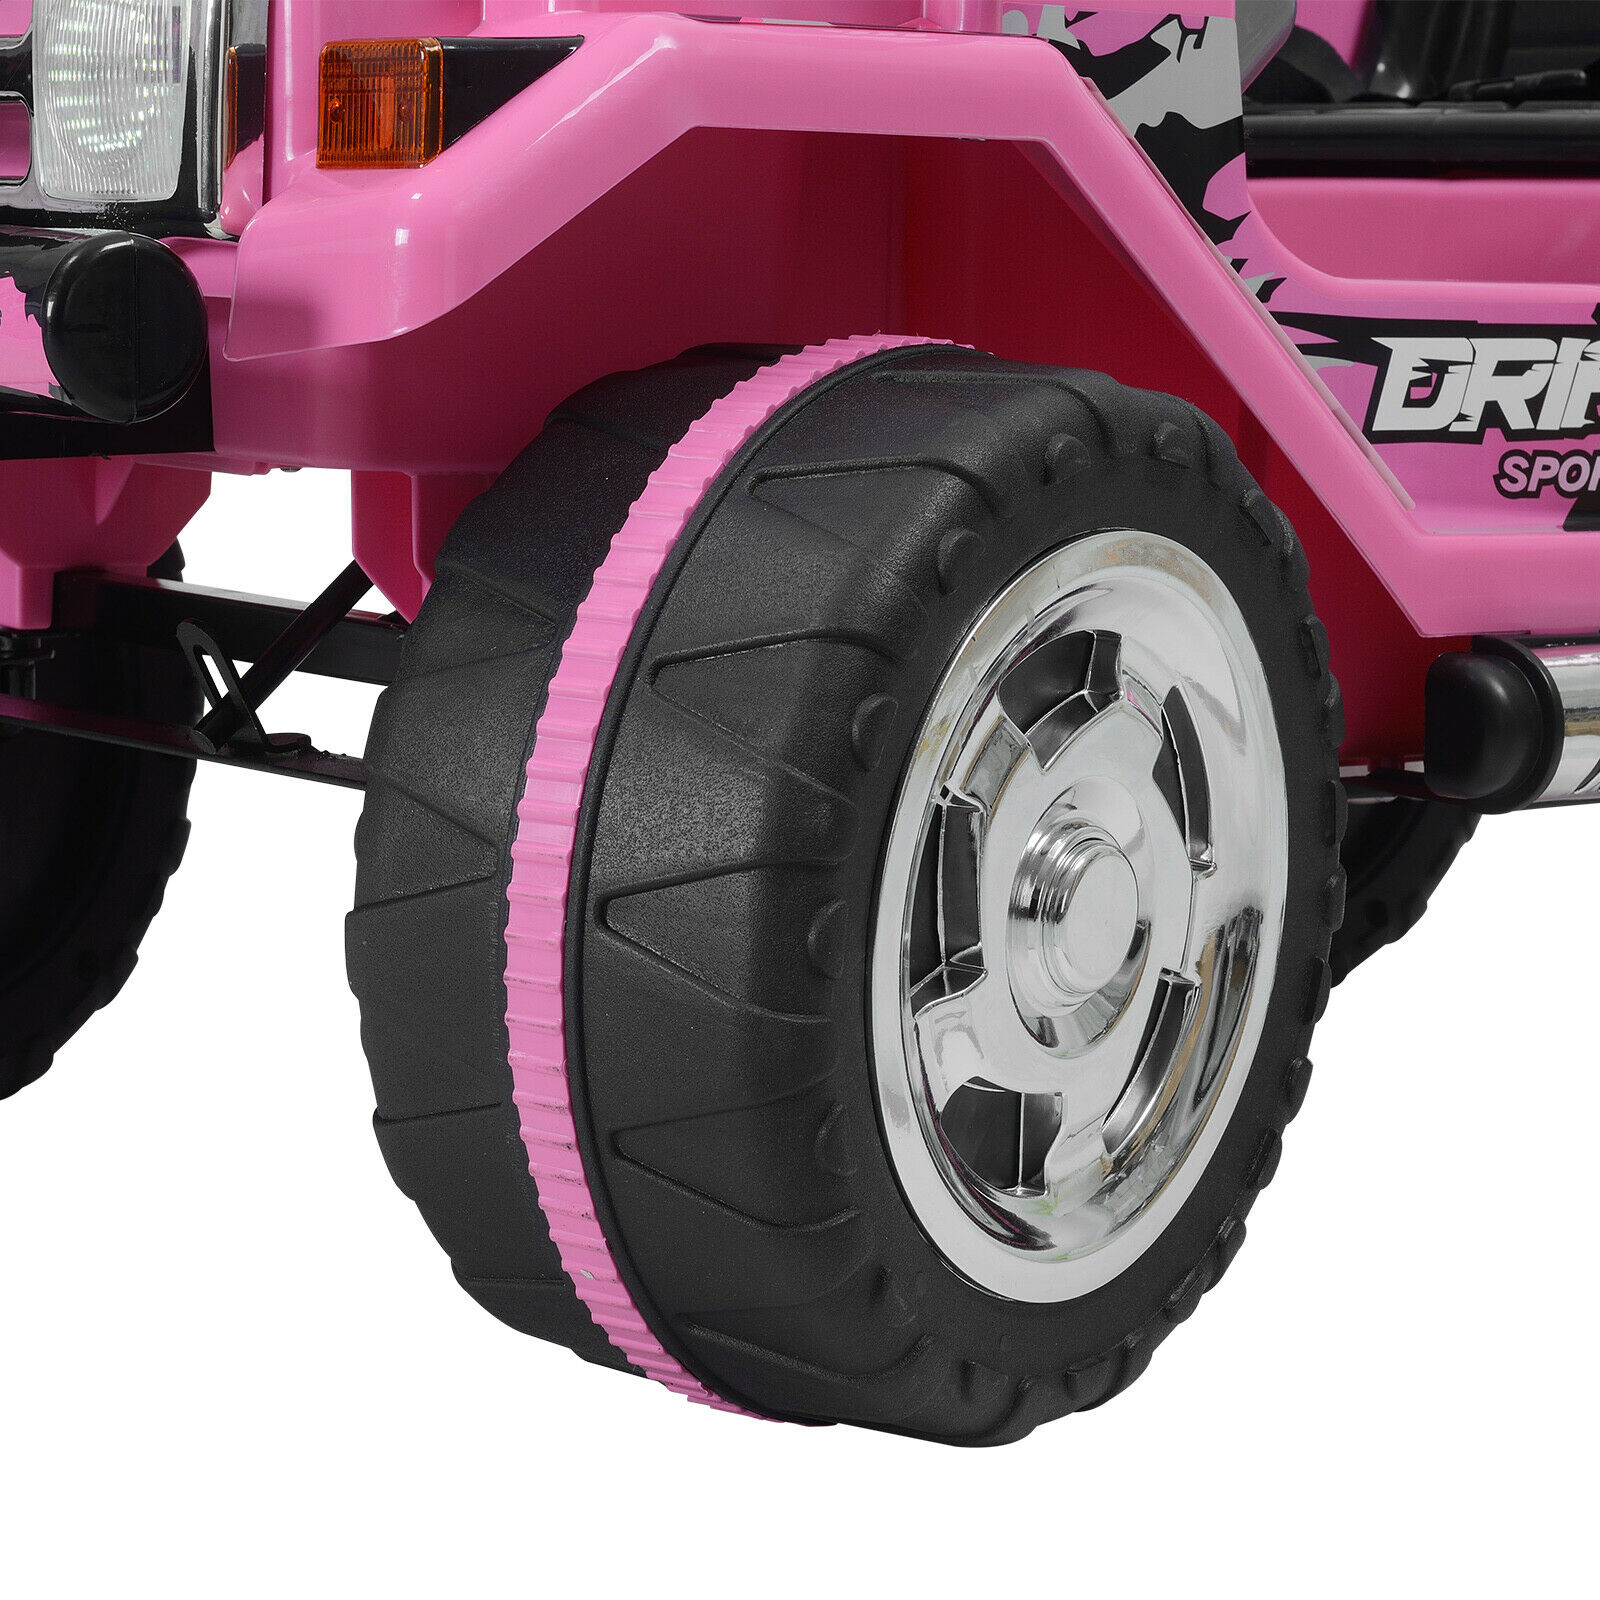 12V Kids Ride On Truck Car w/ Remote Control LED Lights 3 Speeds w/ Music Pink